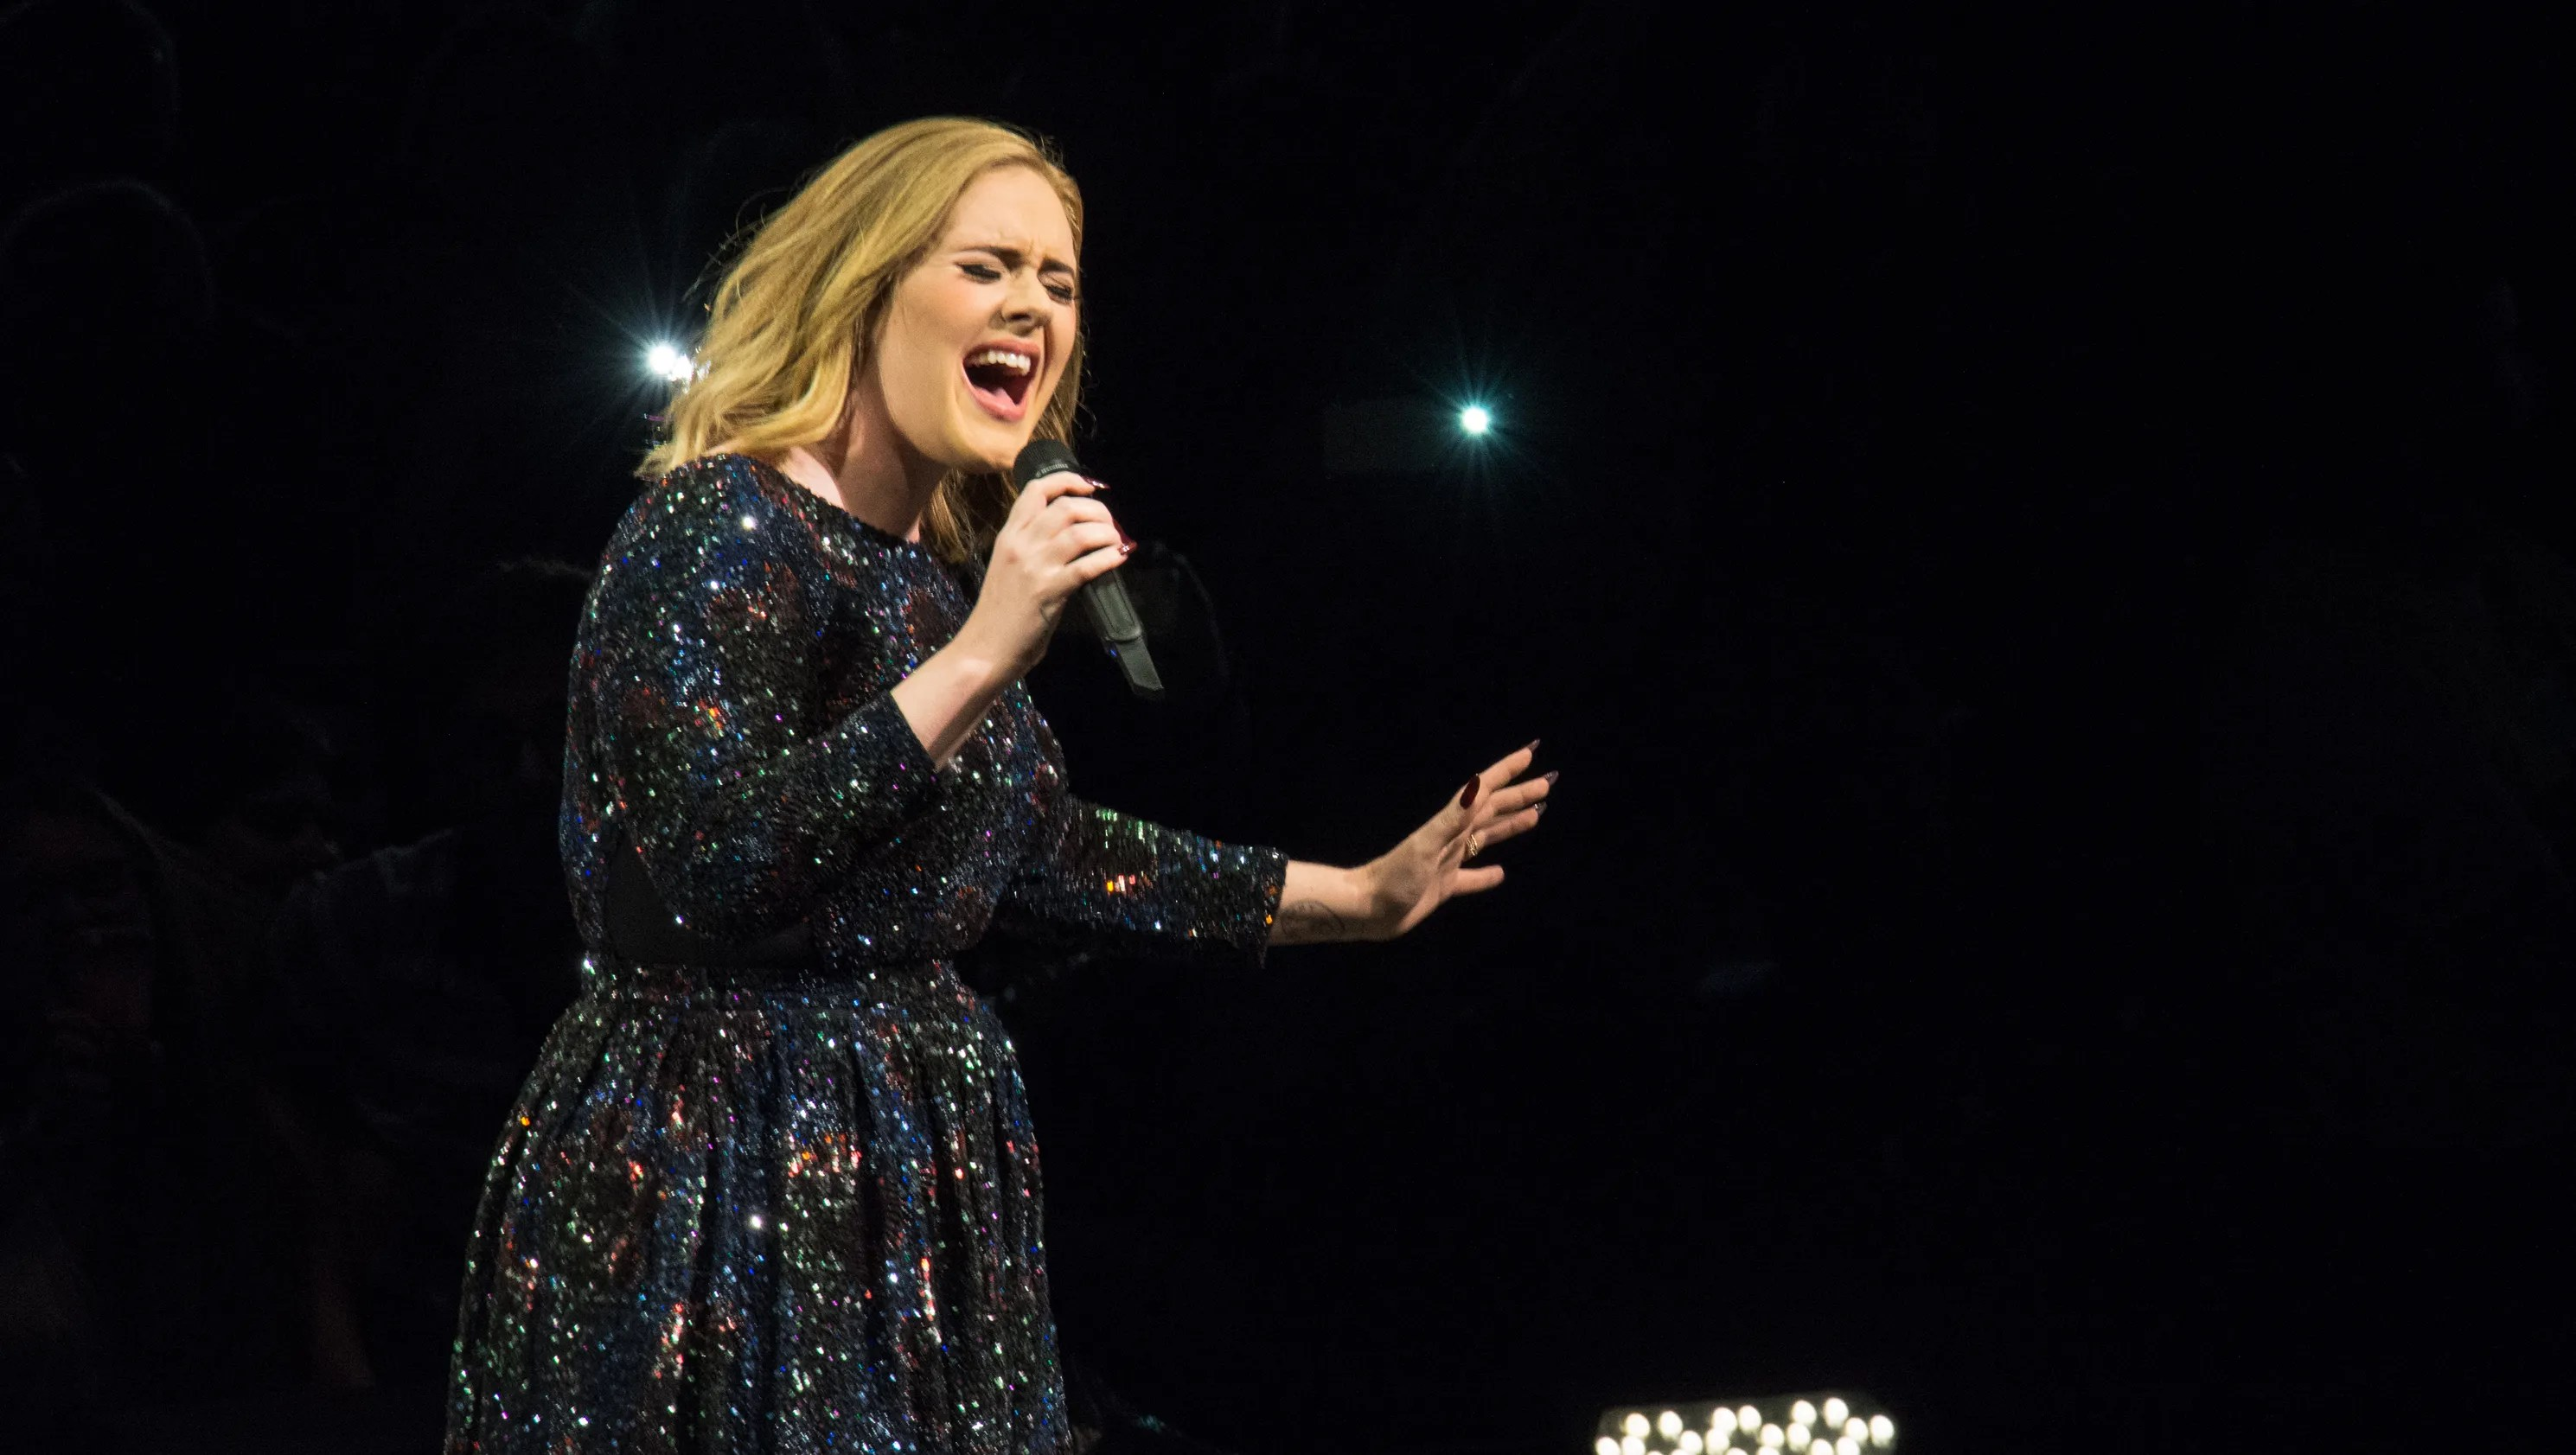 Lisbon Wallpaper Hd Adele Roasts A Fan For Filming Her Concert With A Tripod